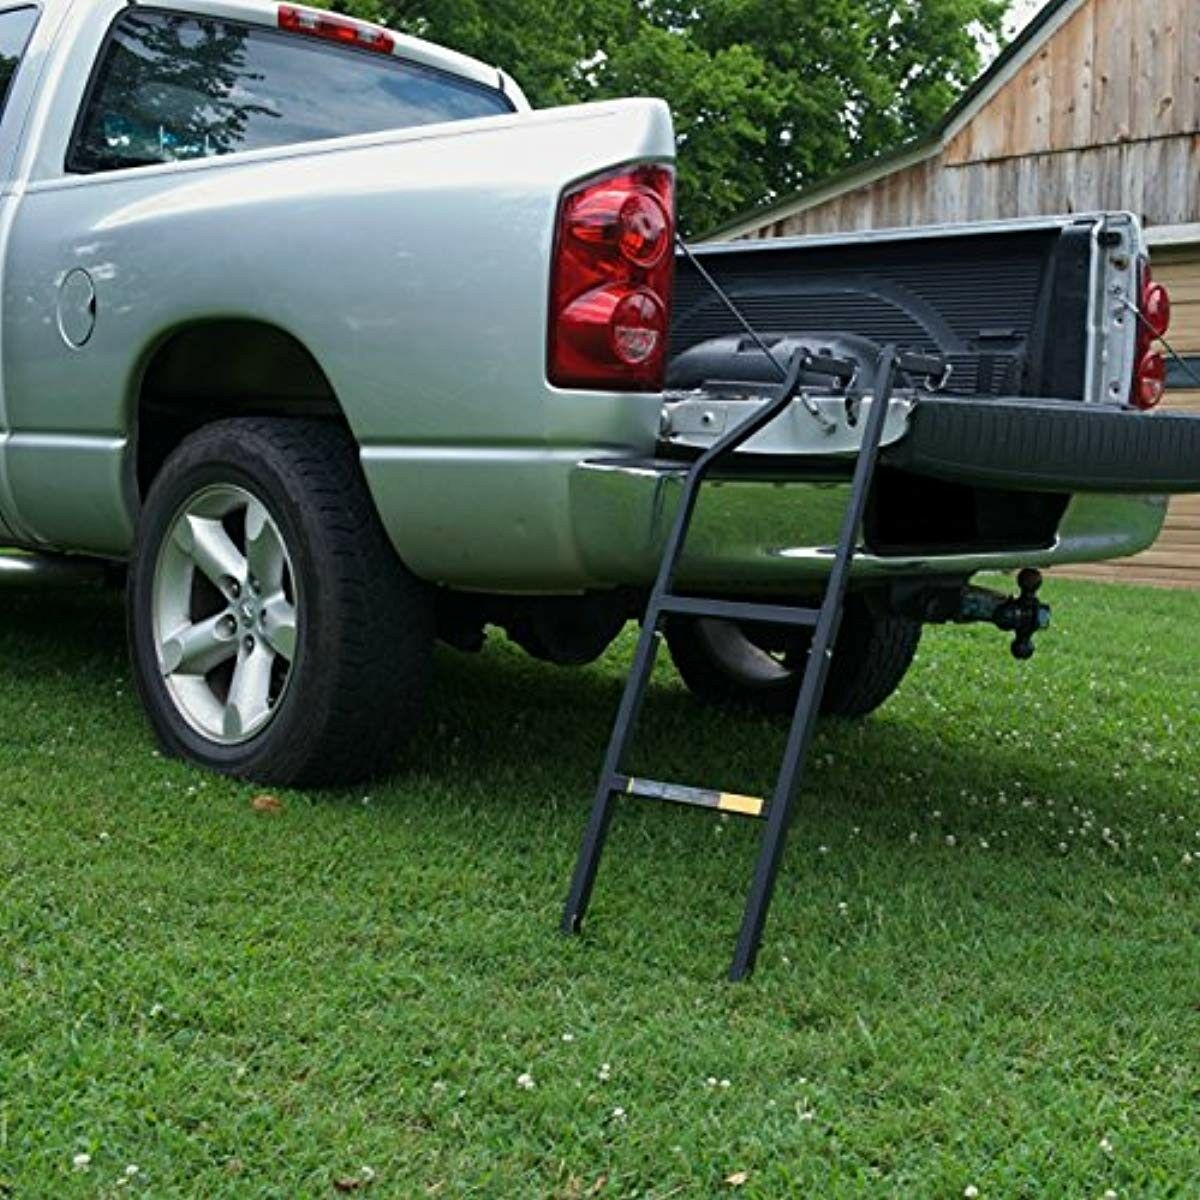 Ground Support Sturdy Easy Install Tail Gate Step Ladder 300 Pound Capacity